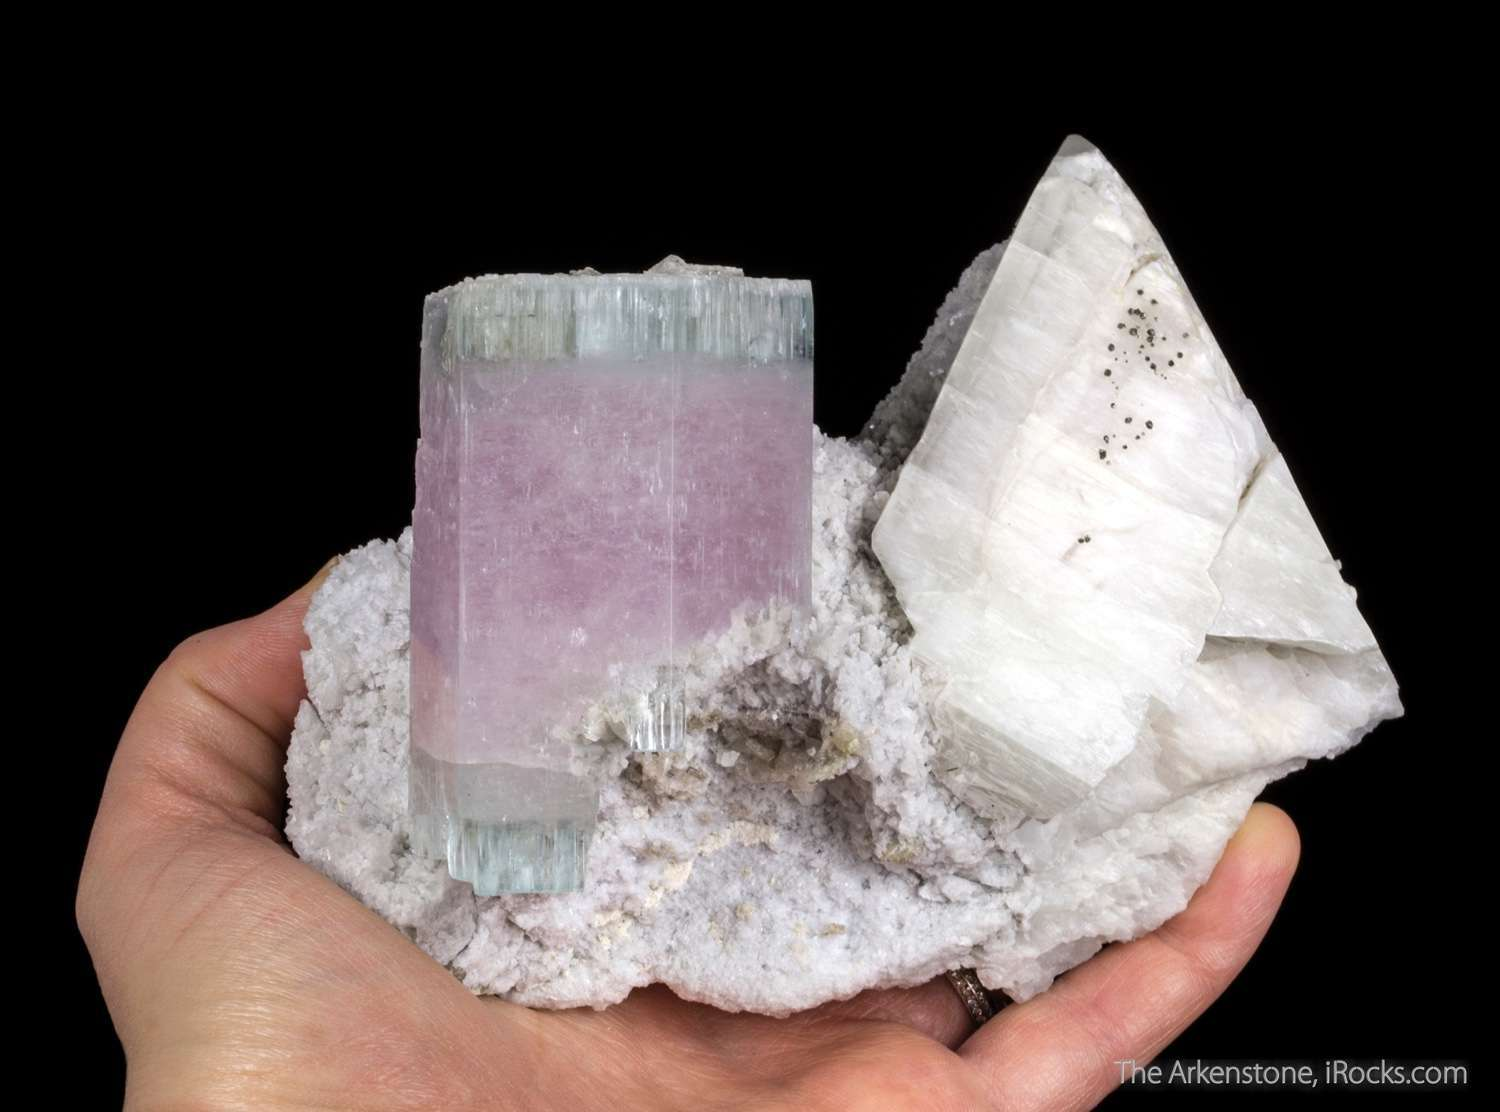 This specimen hosts dramatic doubly terminated crystal measuring 7 x 4